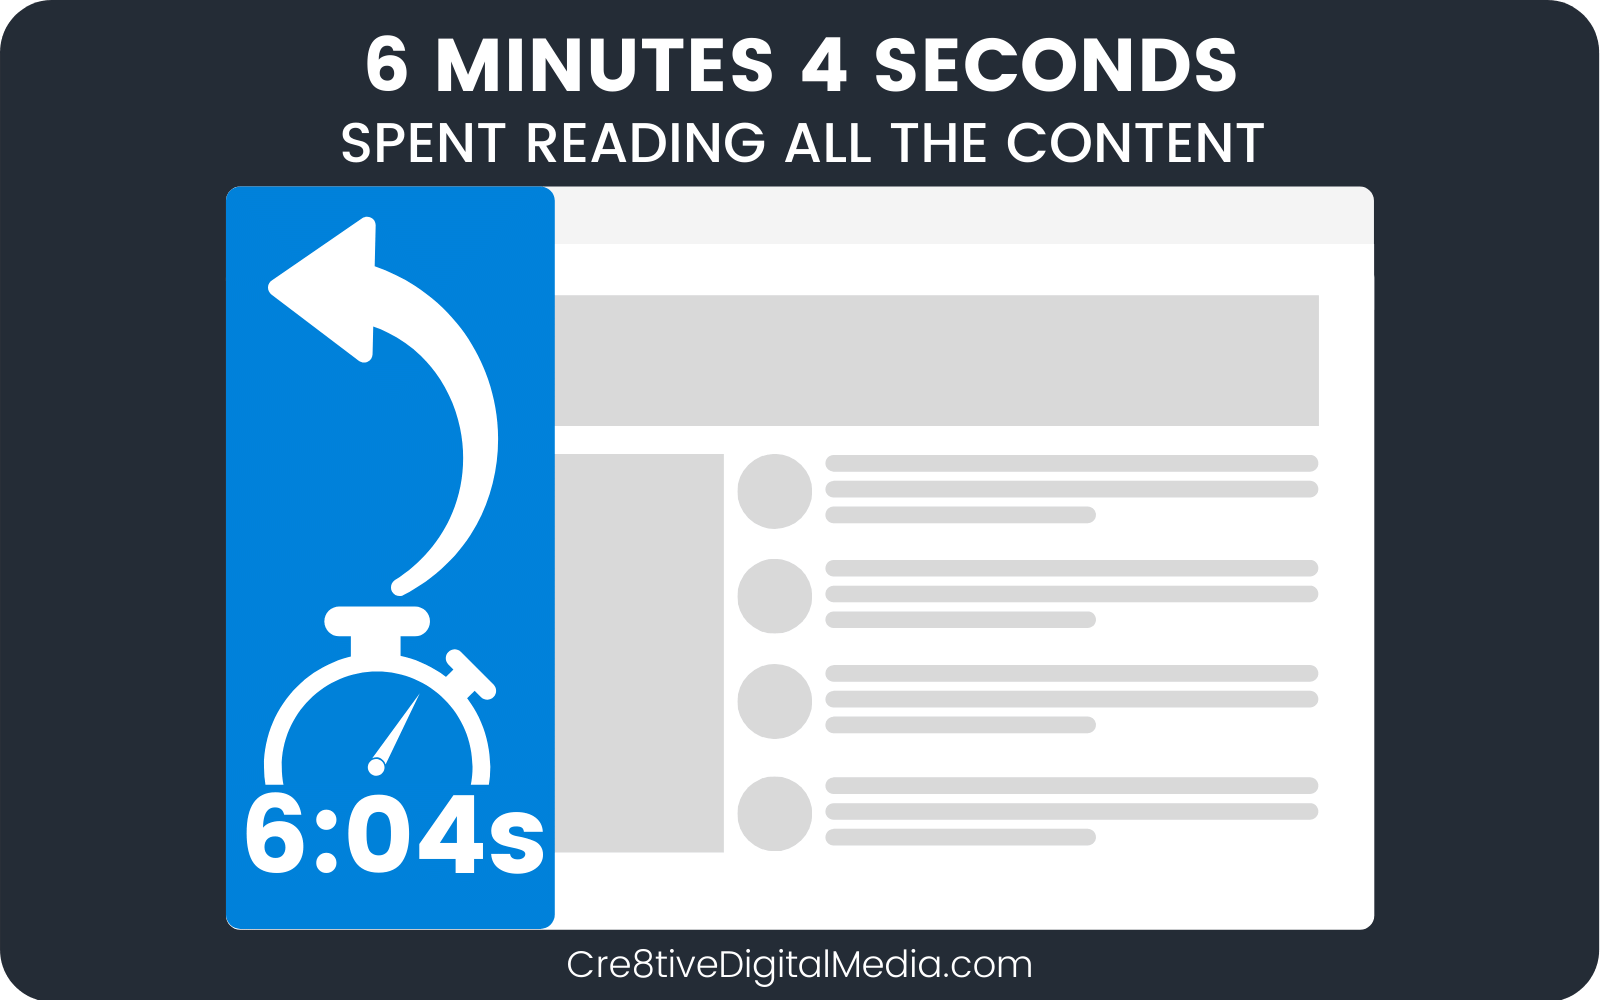 6 Minutes 4 Seconds spent reading all the content